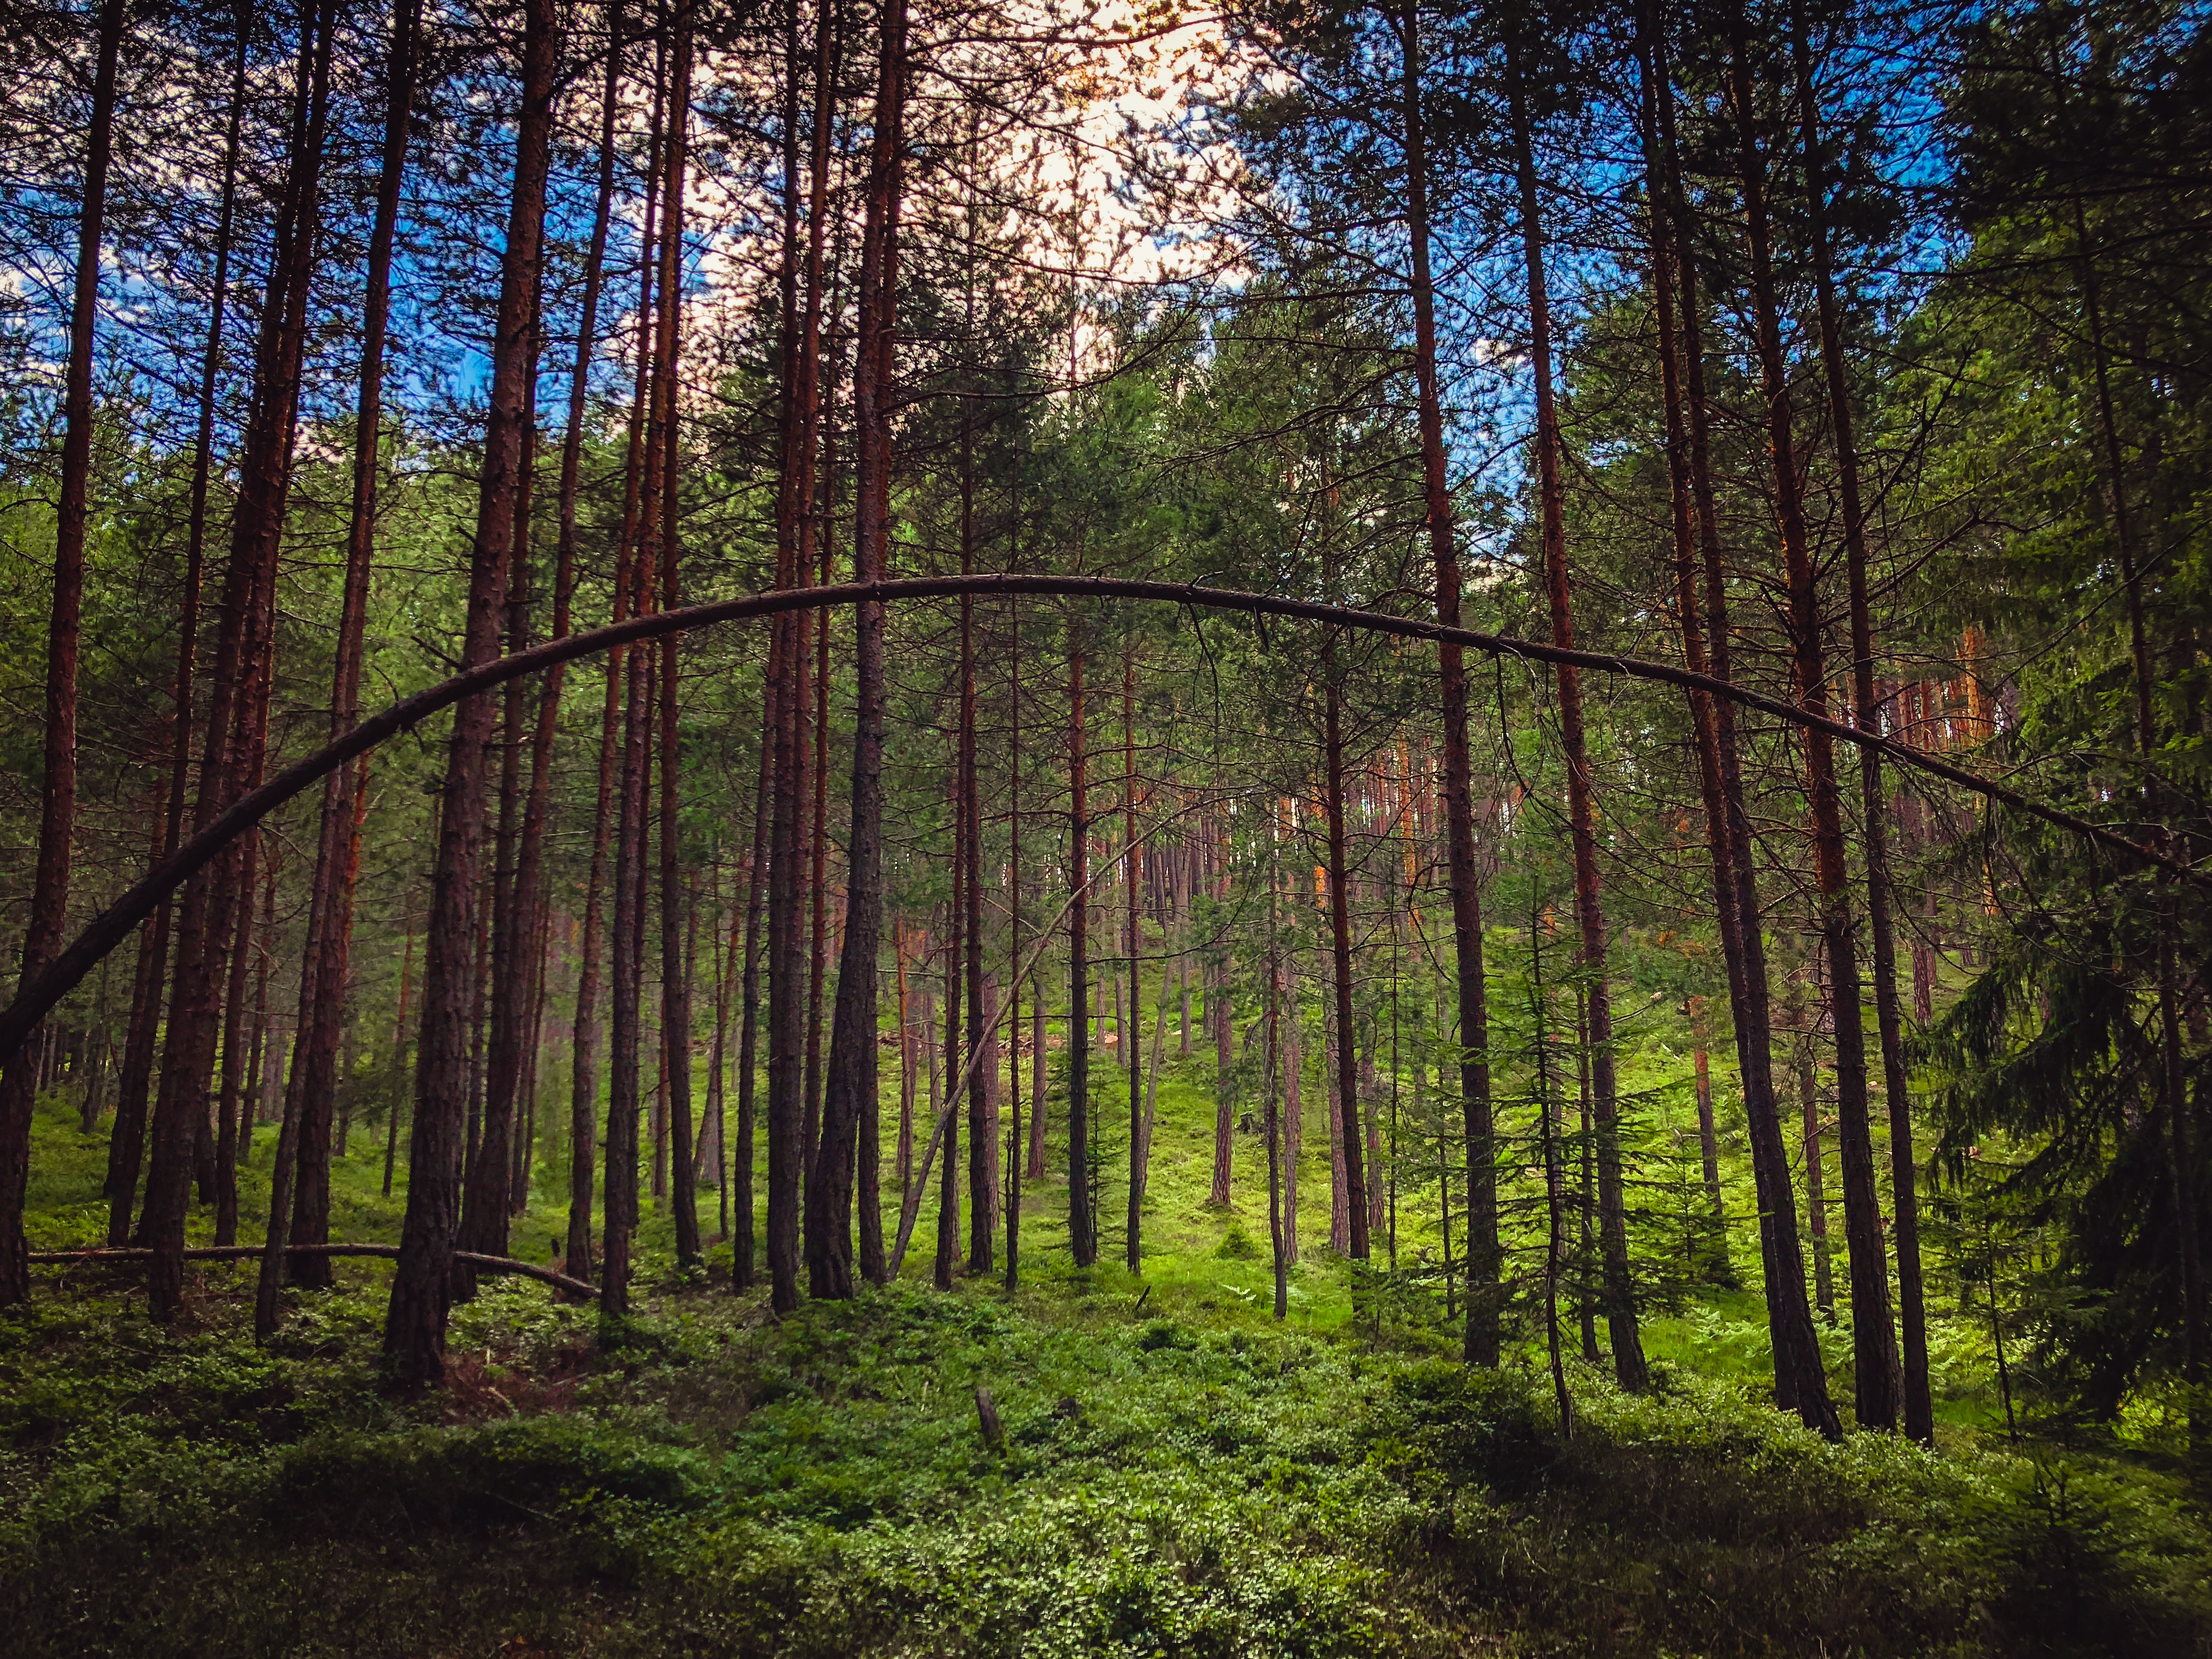 photo of forest with trees